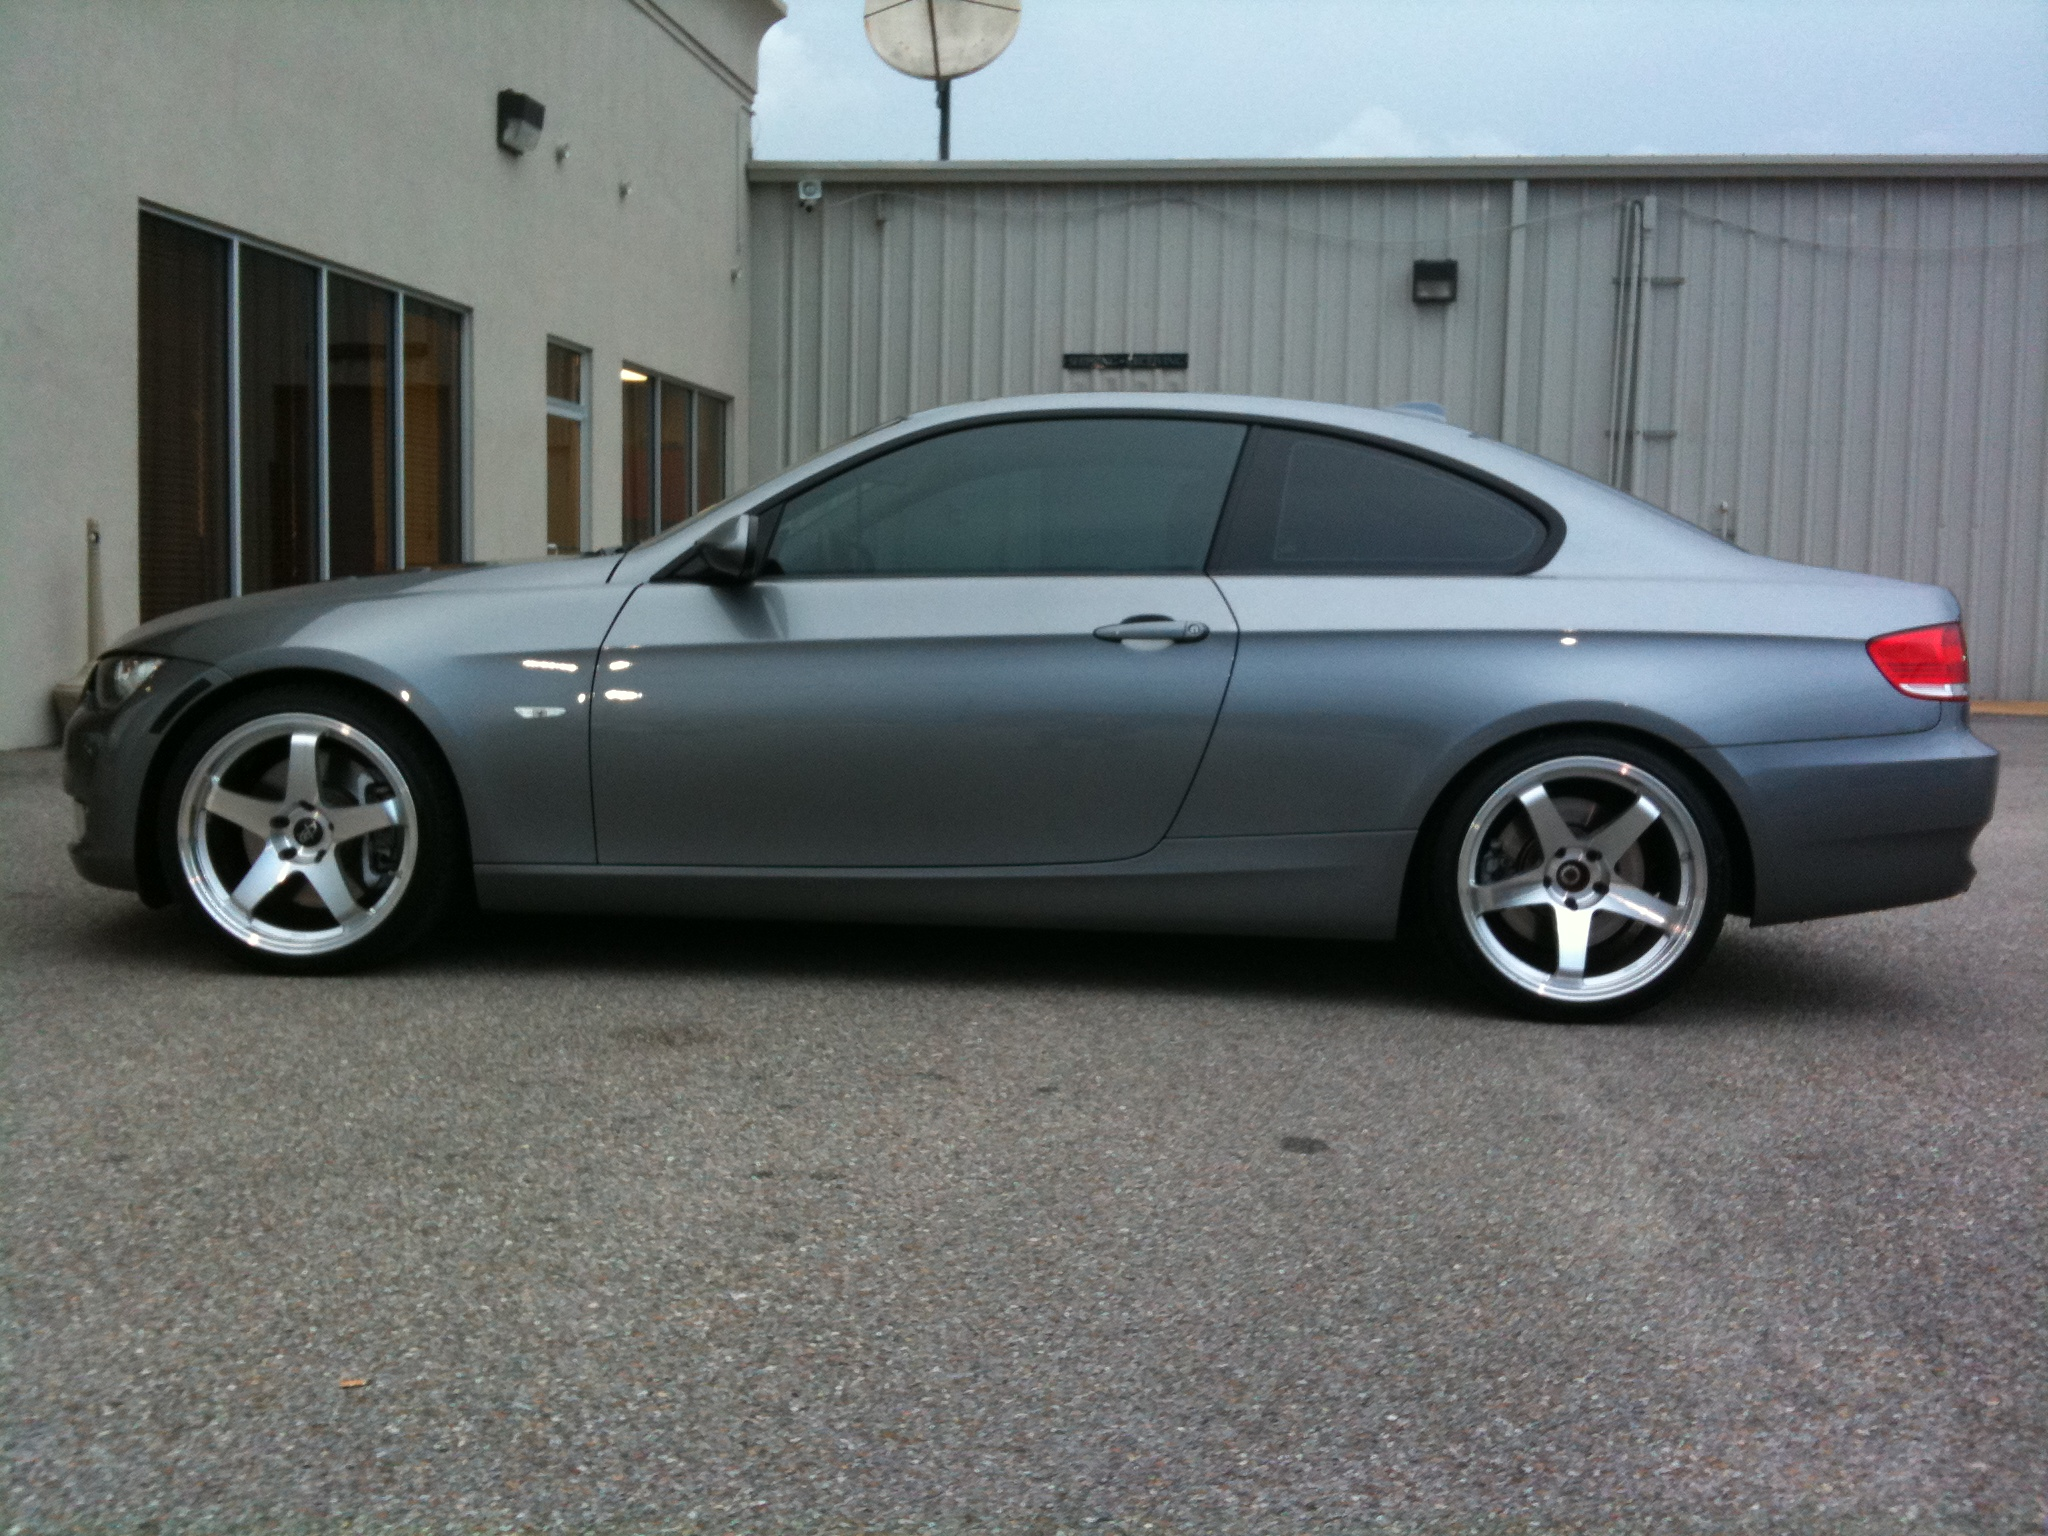 BMW I Coupe JB Mile Drag Racing Timeslip Specs - 2007 bmw 335i performance upgrades